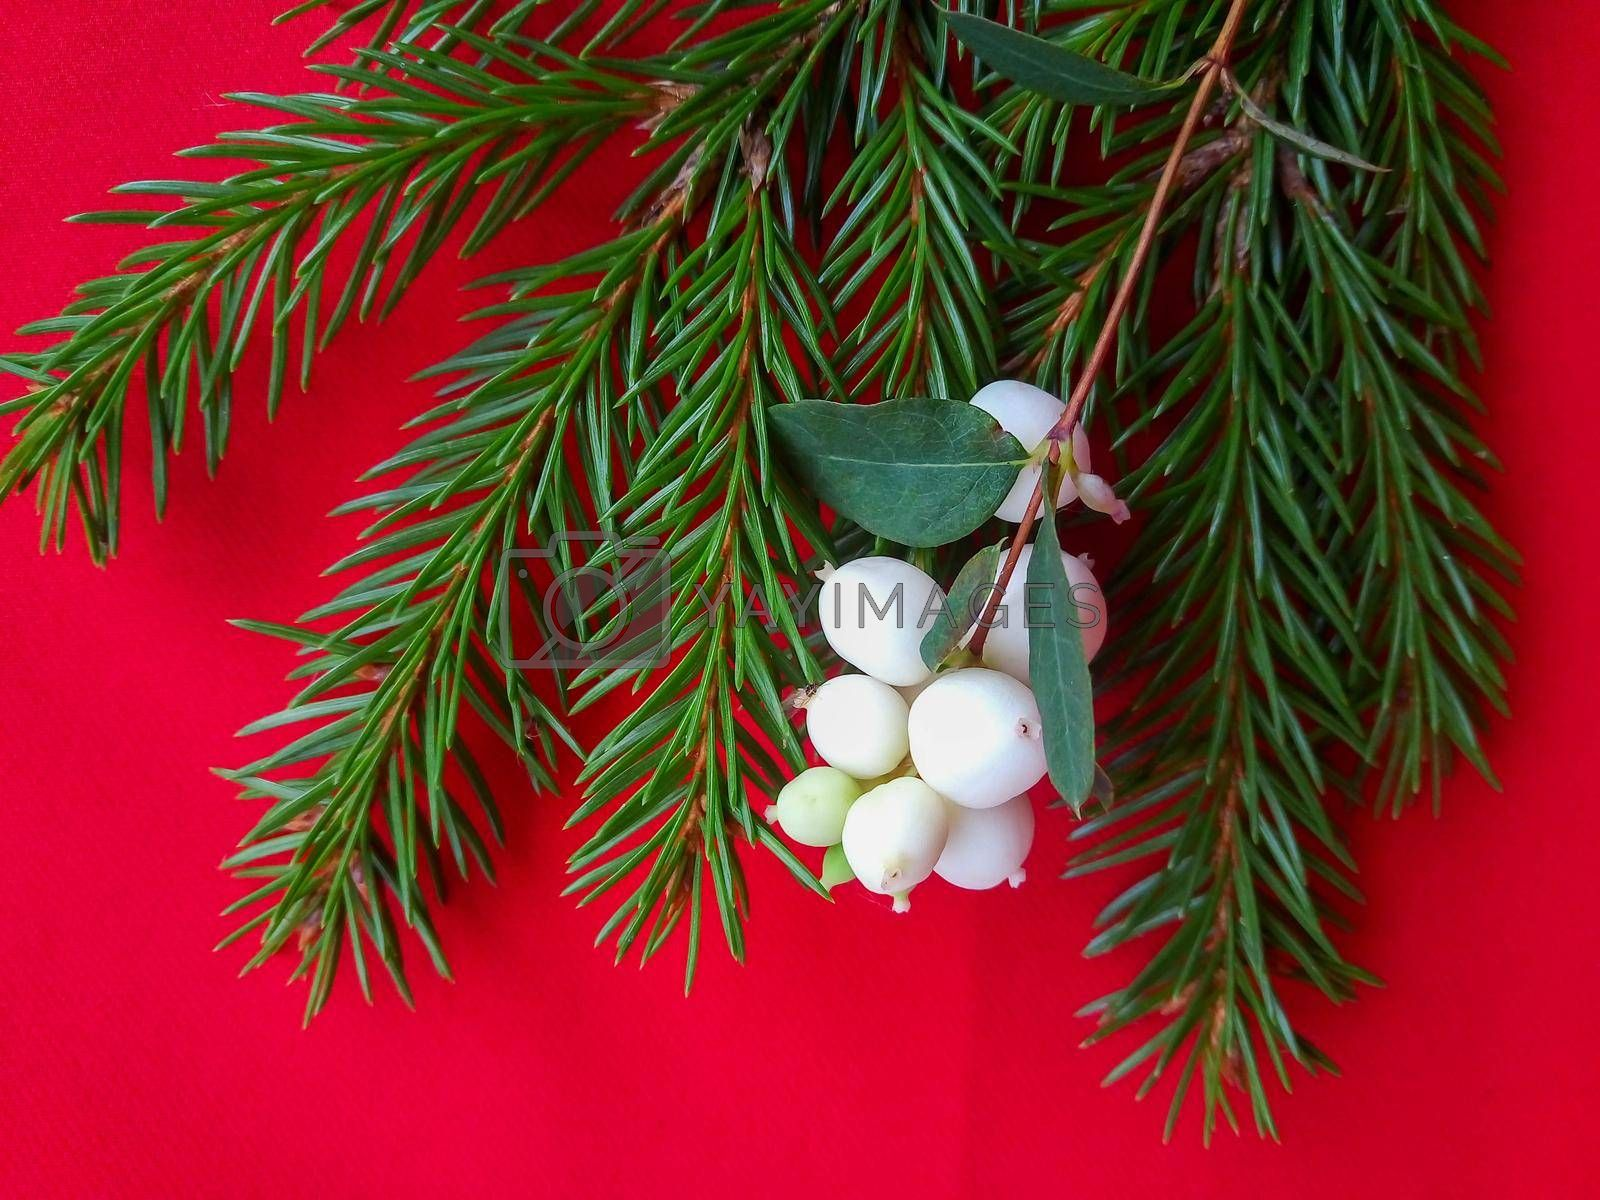 Spruce green branch with white berries on a red background.